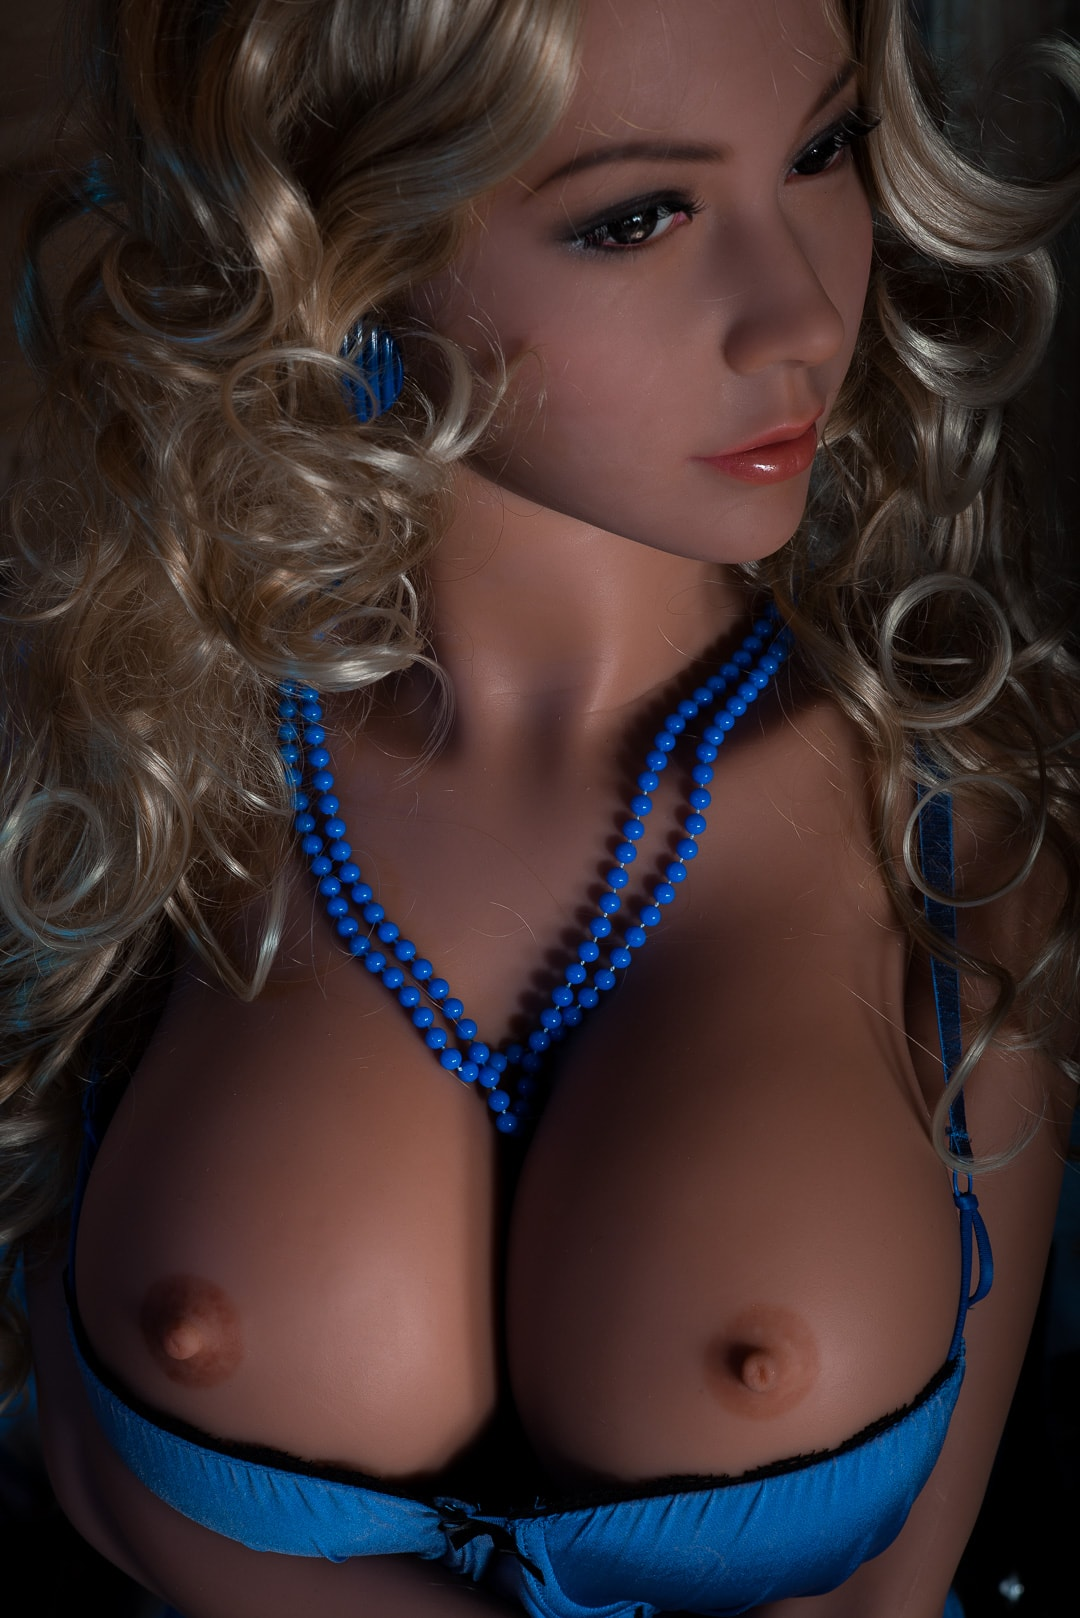 michaela 155cm blonde big boobs athletic tan skin tpe wm sex doll(9)